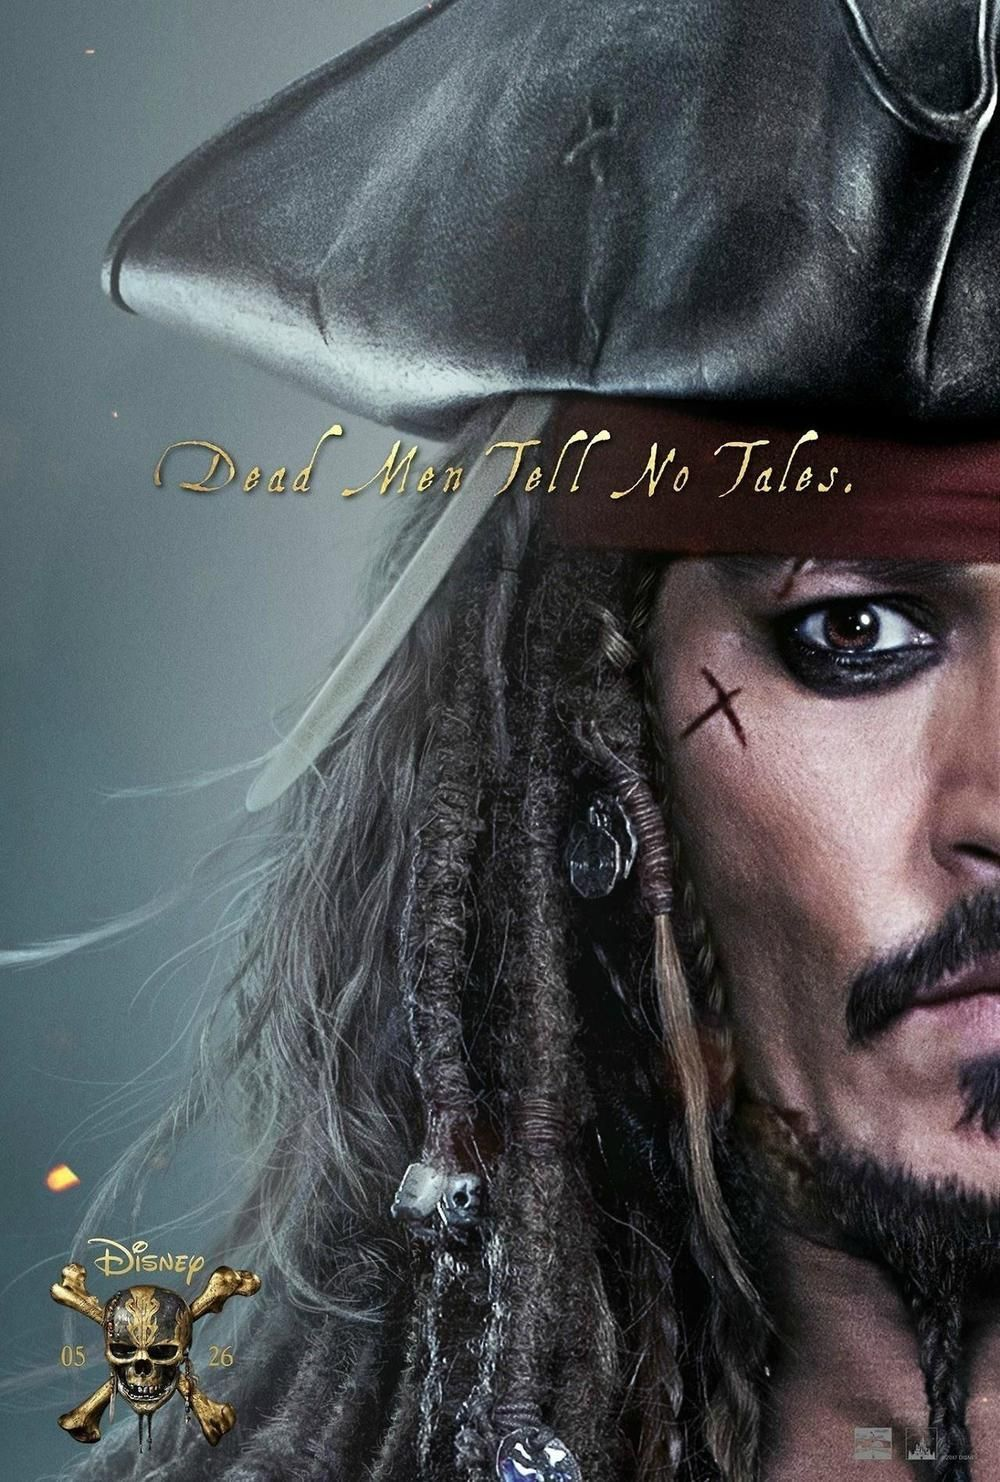 Pirates Of The Caribbean Dead Men Tell No Tales Will Turner Pirates Of The Caribbean Dead Men Tell No Tales Pirates Of The Caribbean Captain Jack Sparrow Captain Jack Sparrow Quotes